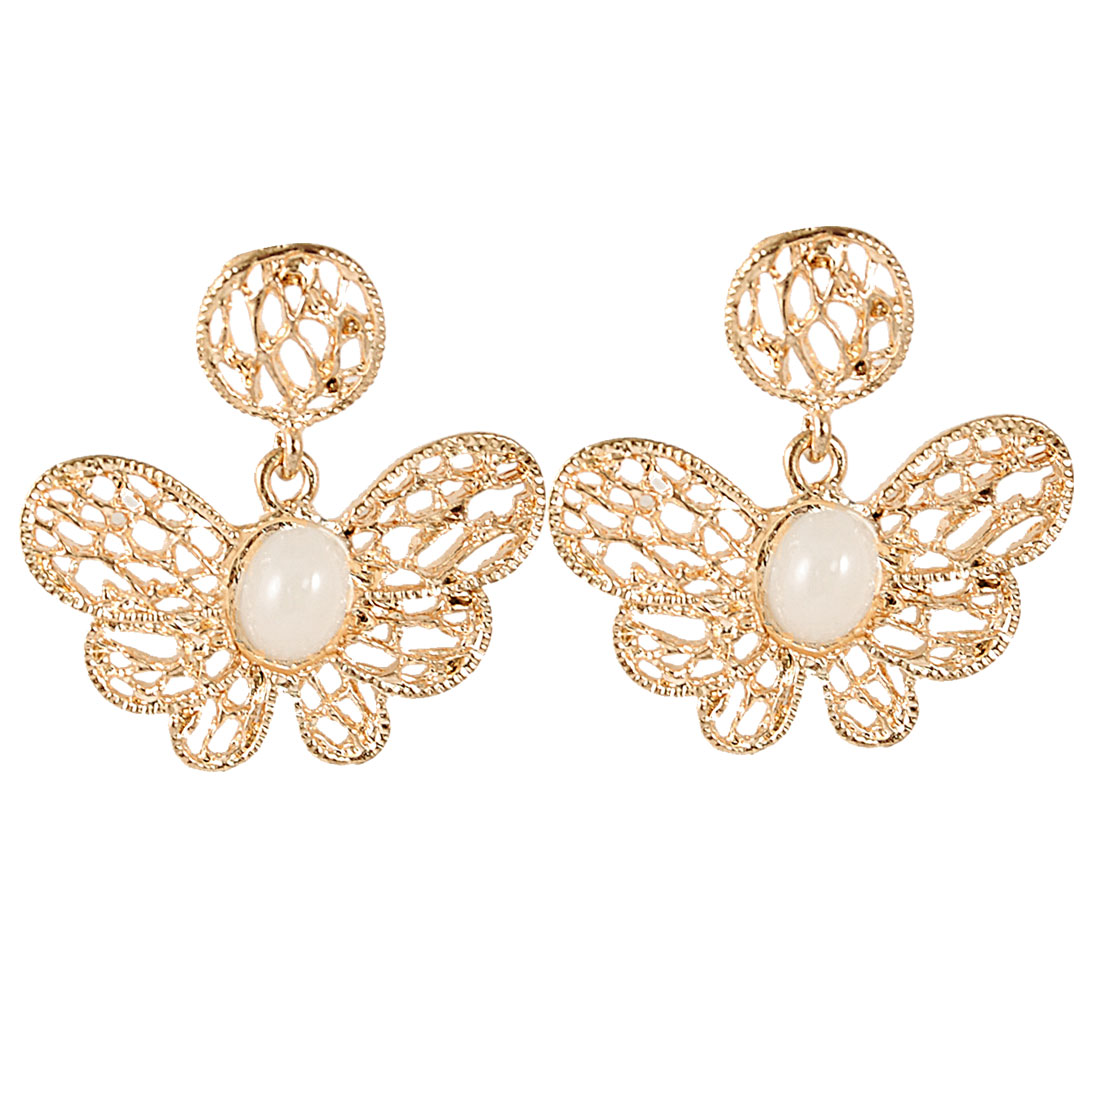 Pair Gold Tone Butterfly Dangle White Translucent Plastic Decor Ear Pin Stud Earrings